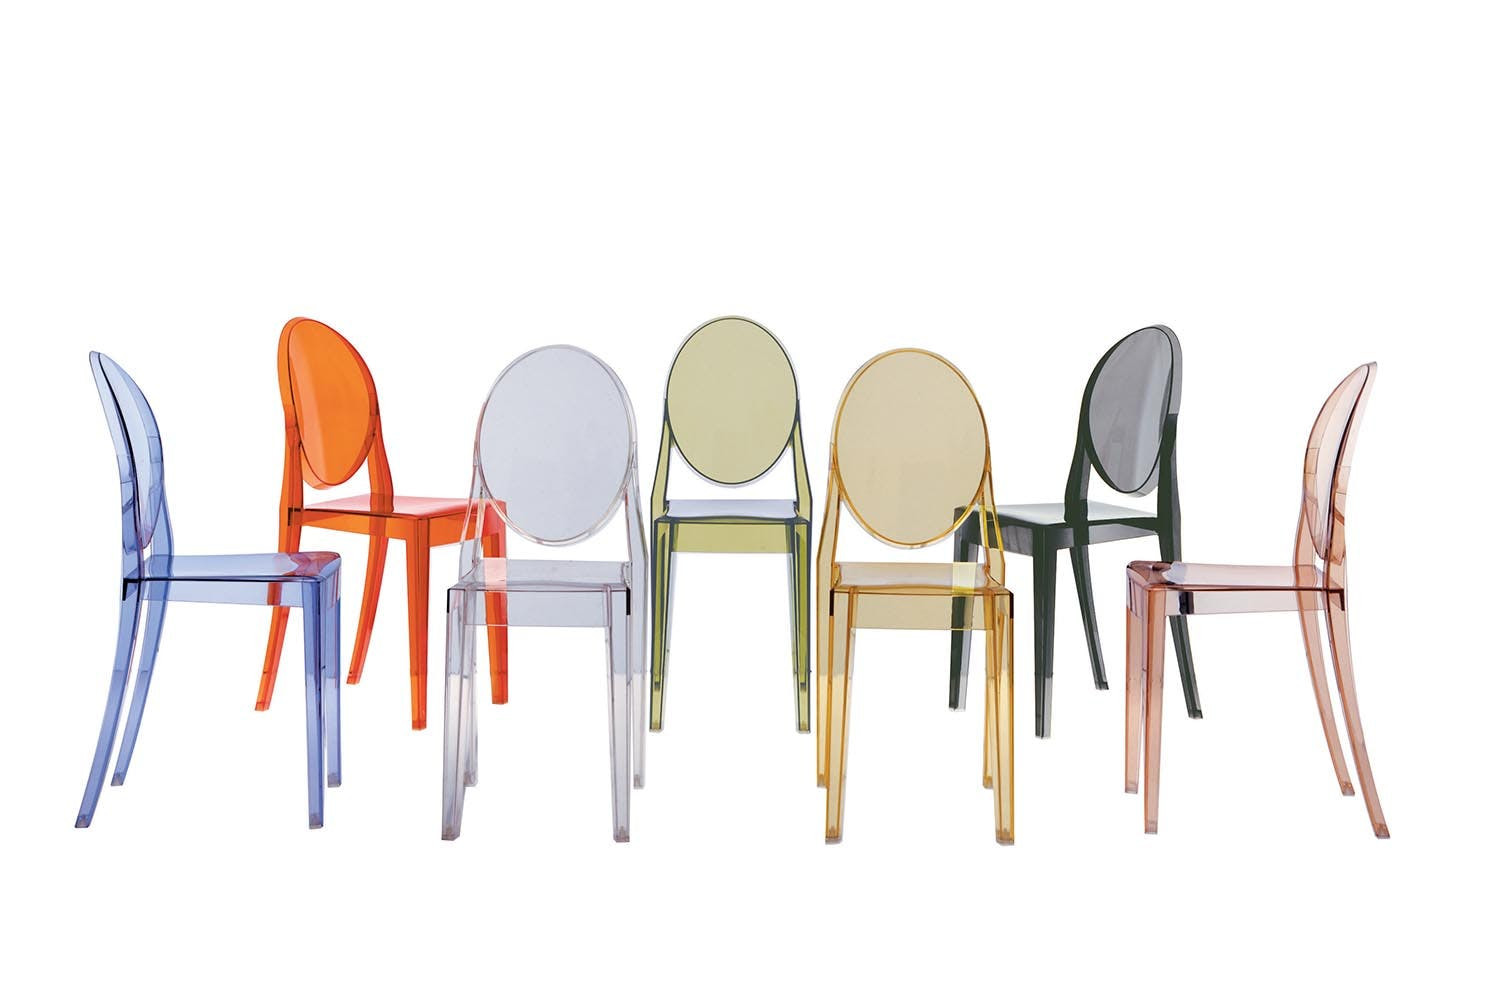 victoria ghost chair by philippe starck for kartell  space furniture - share